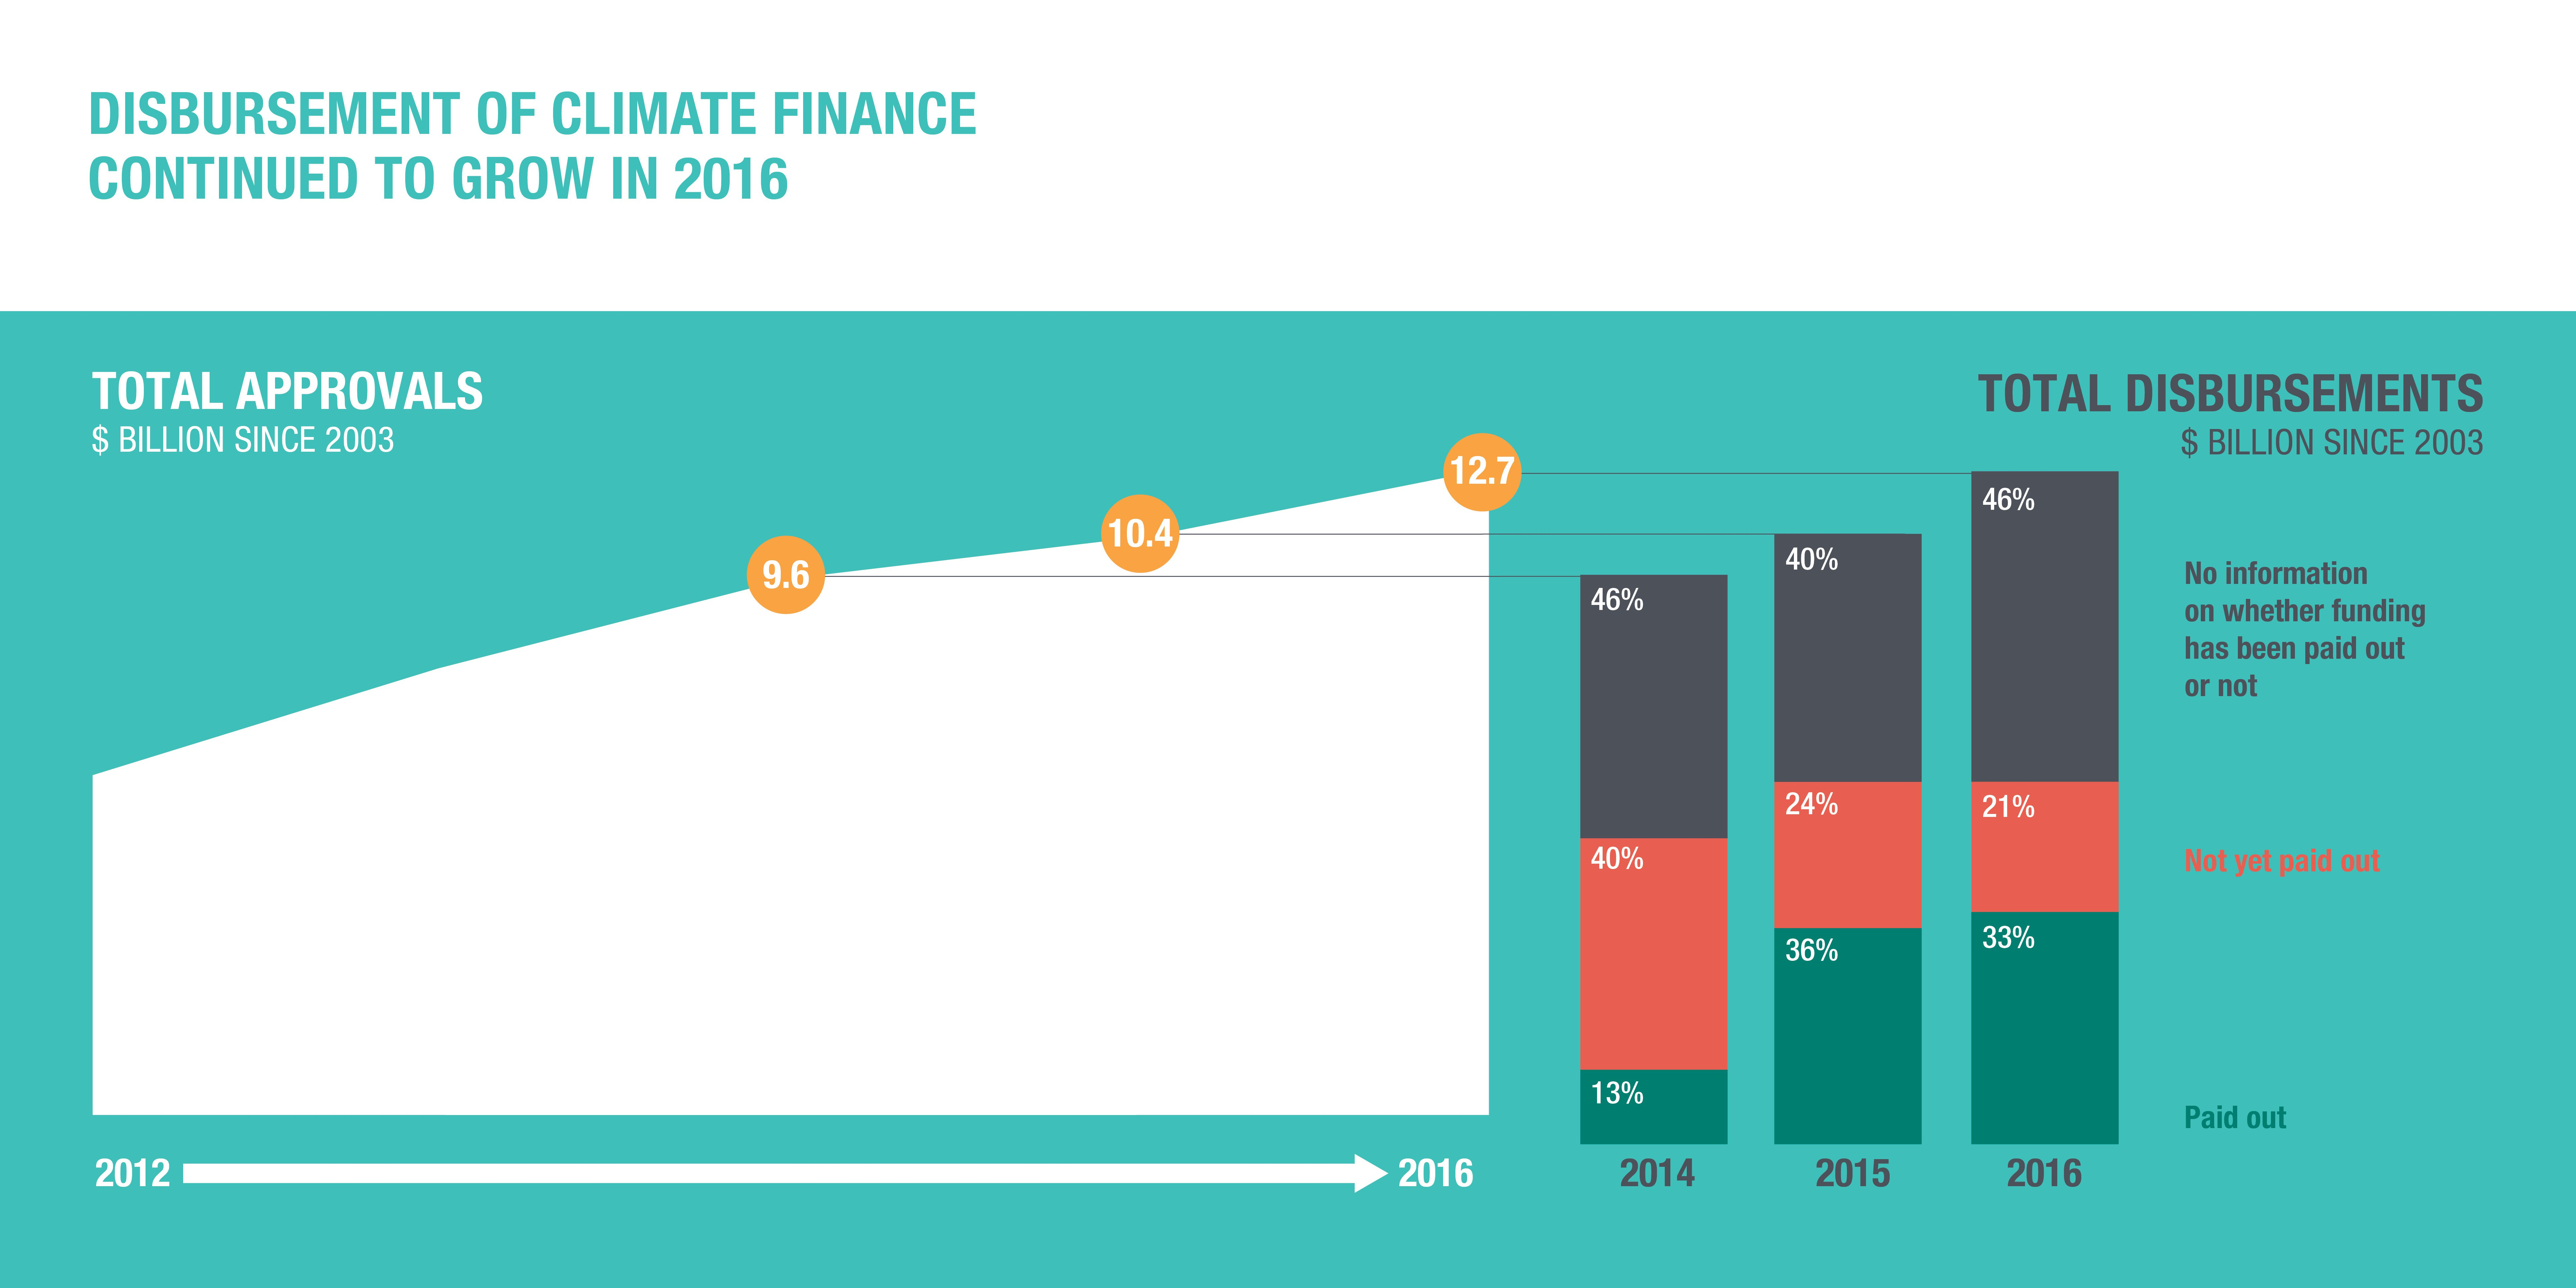 Infographic: disbursement of climate finance continued to grow in 2016